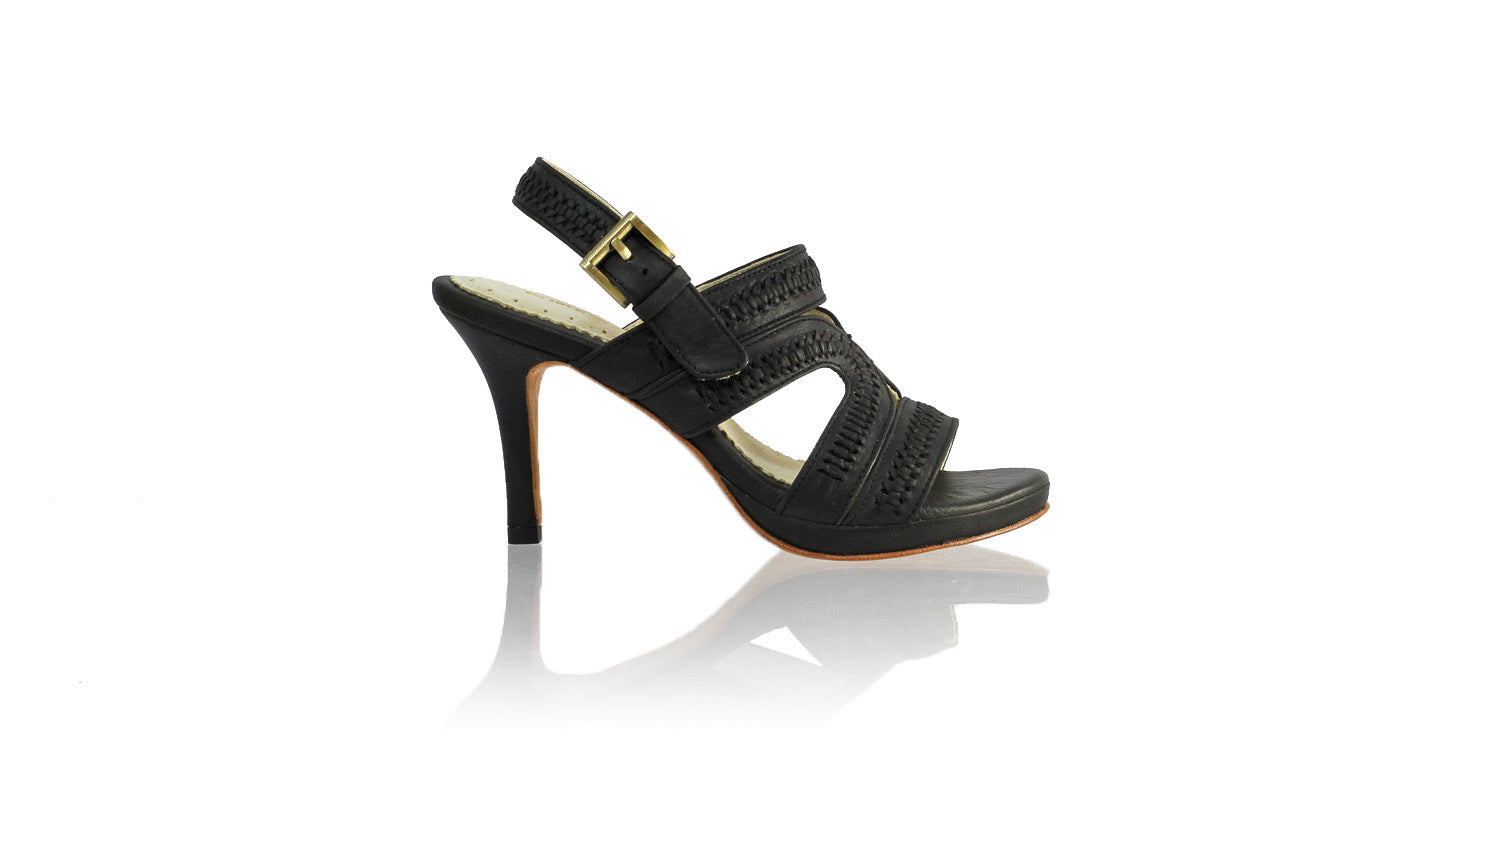 Leather-shoes-Lilies 90mm SH-01 PF - Black-sandals higheel-NILUH DJELANTIK-NILUH DJELANTIK